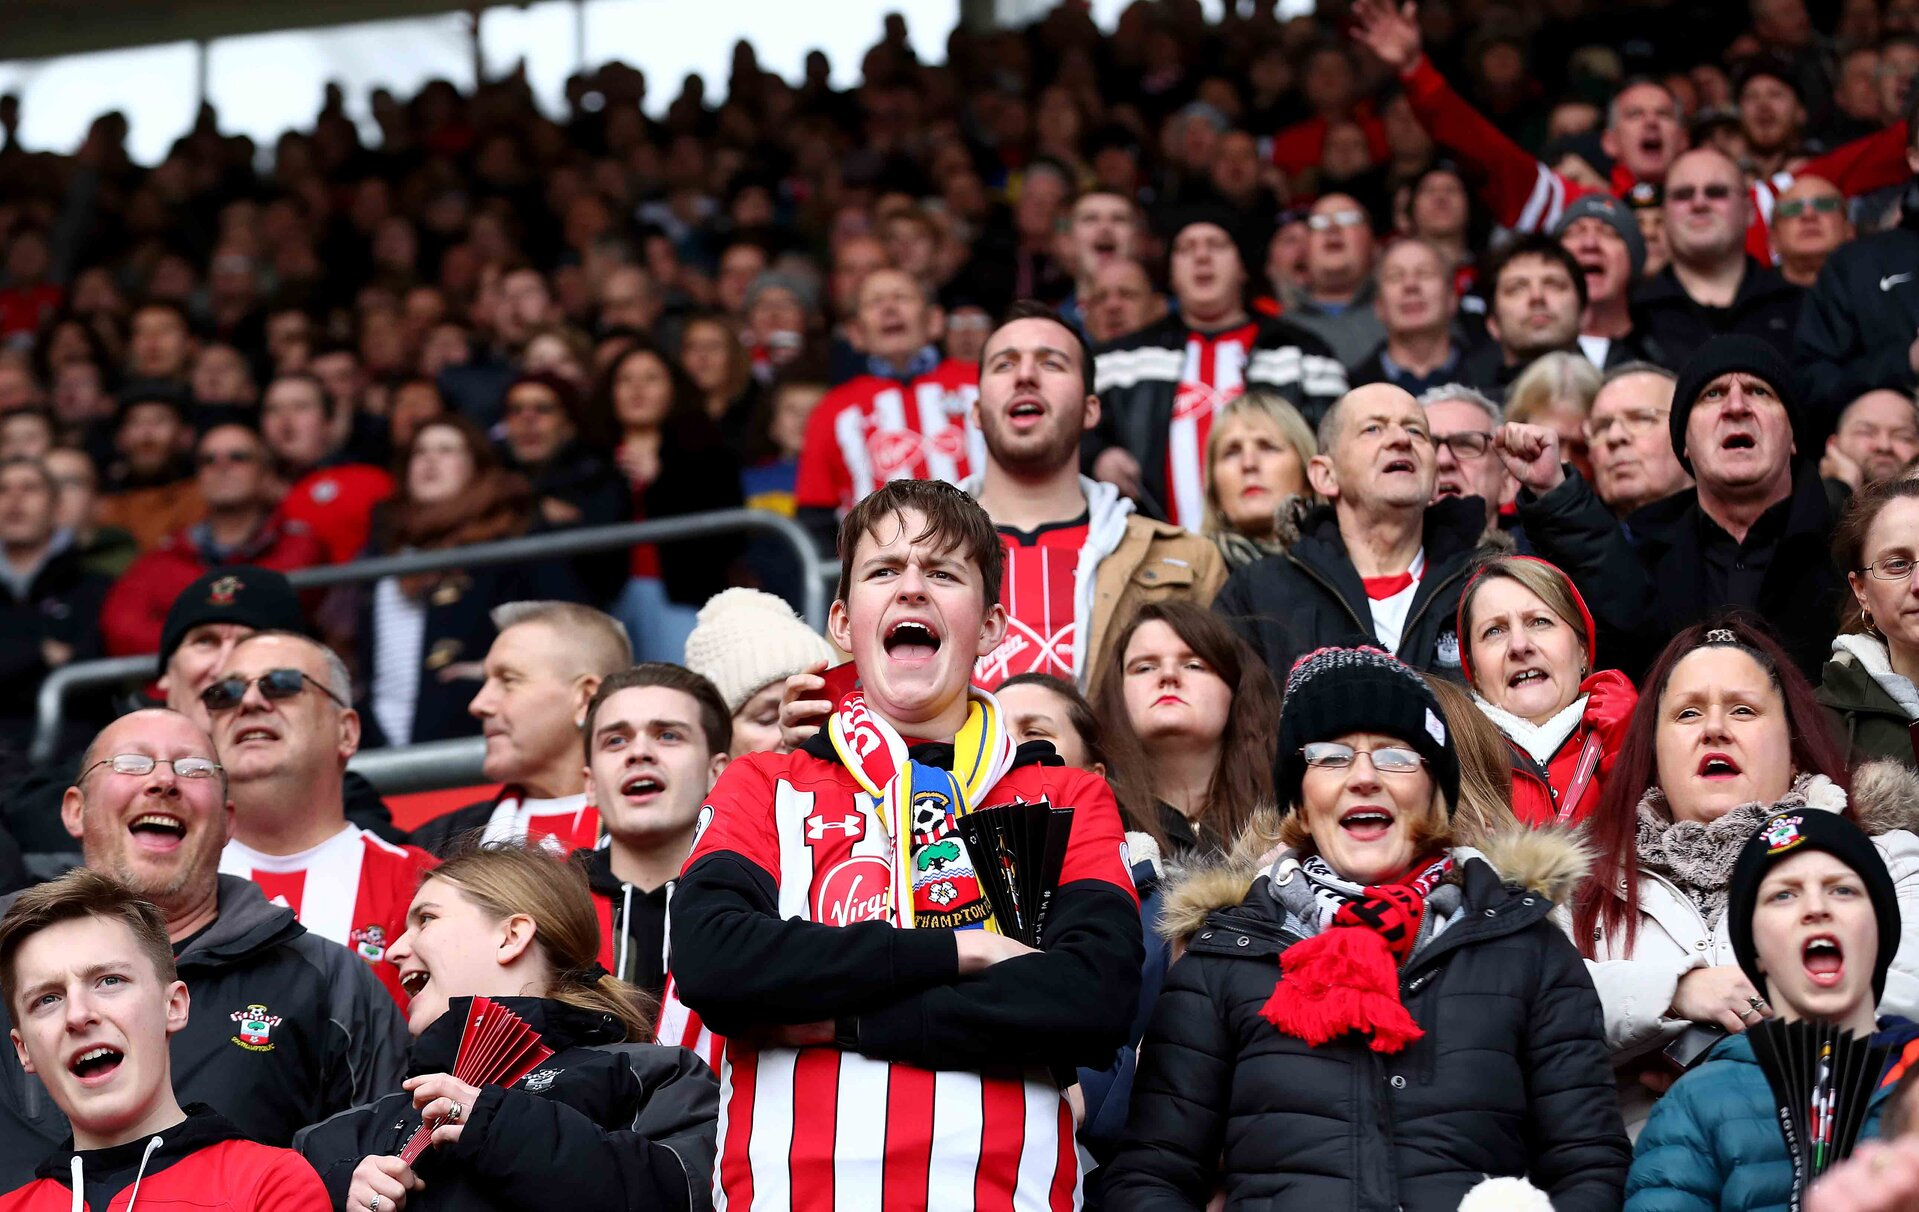 SOUTHAMPTON, ENGLAND - FEBRUARY 09: fans of Southampton during the Premier League match between Southampton FC and Cardiff City at St Mary's Stadium on February 09, 2019 in Southampton, United Kingdom. (Photo by Matt Watson/Southampton FC via Getty Images)